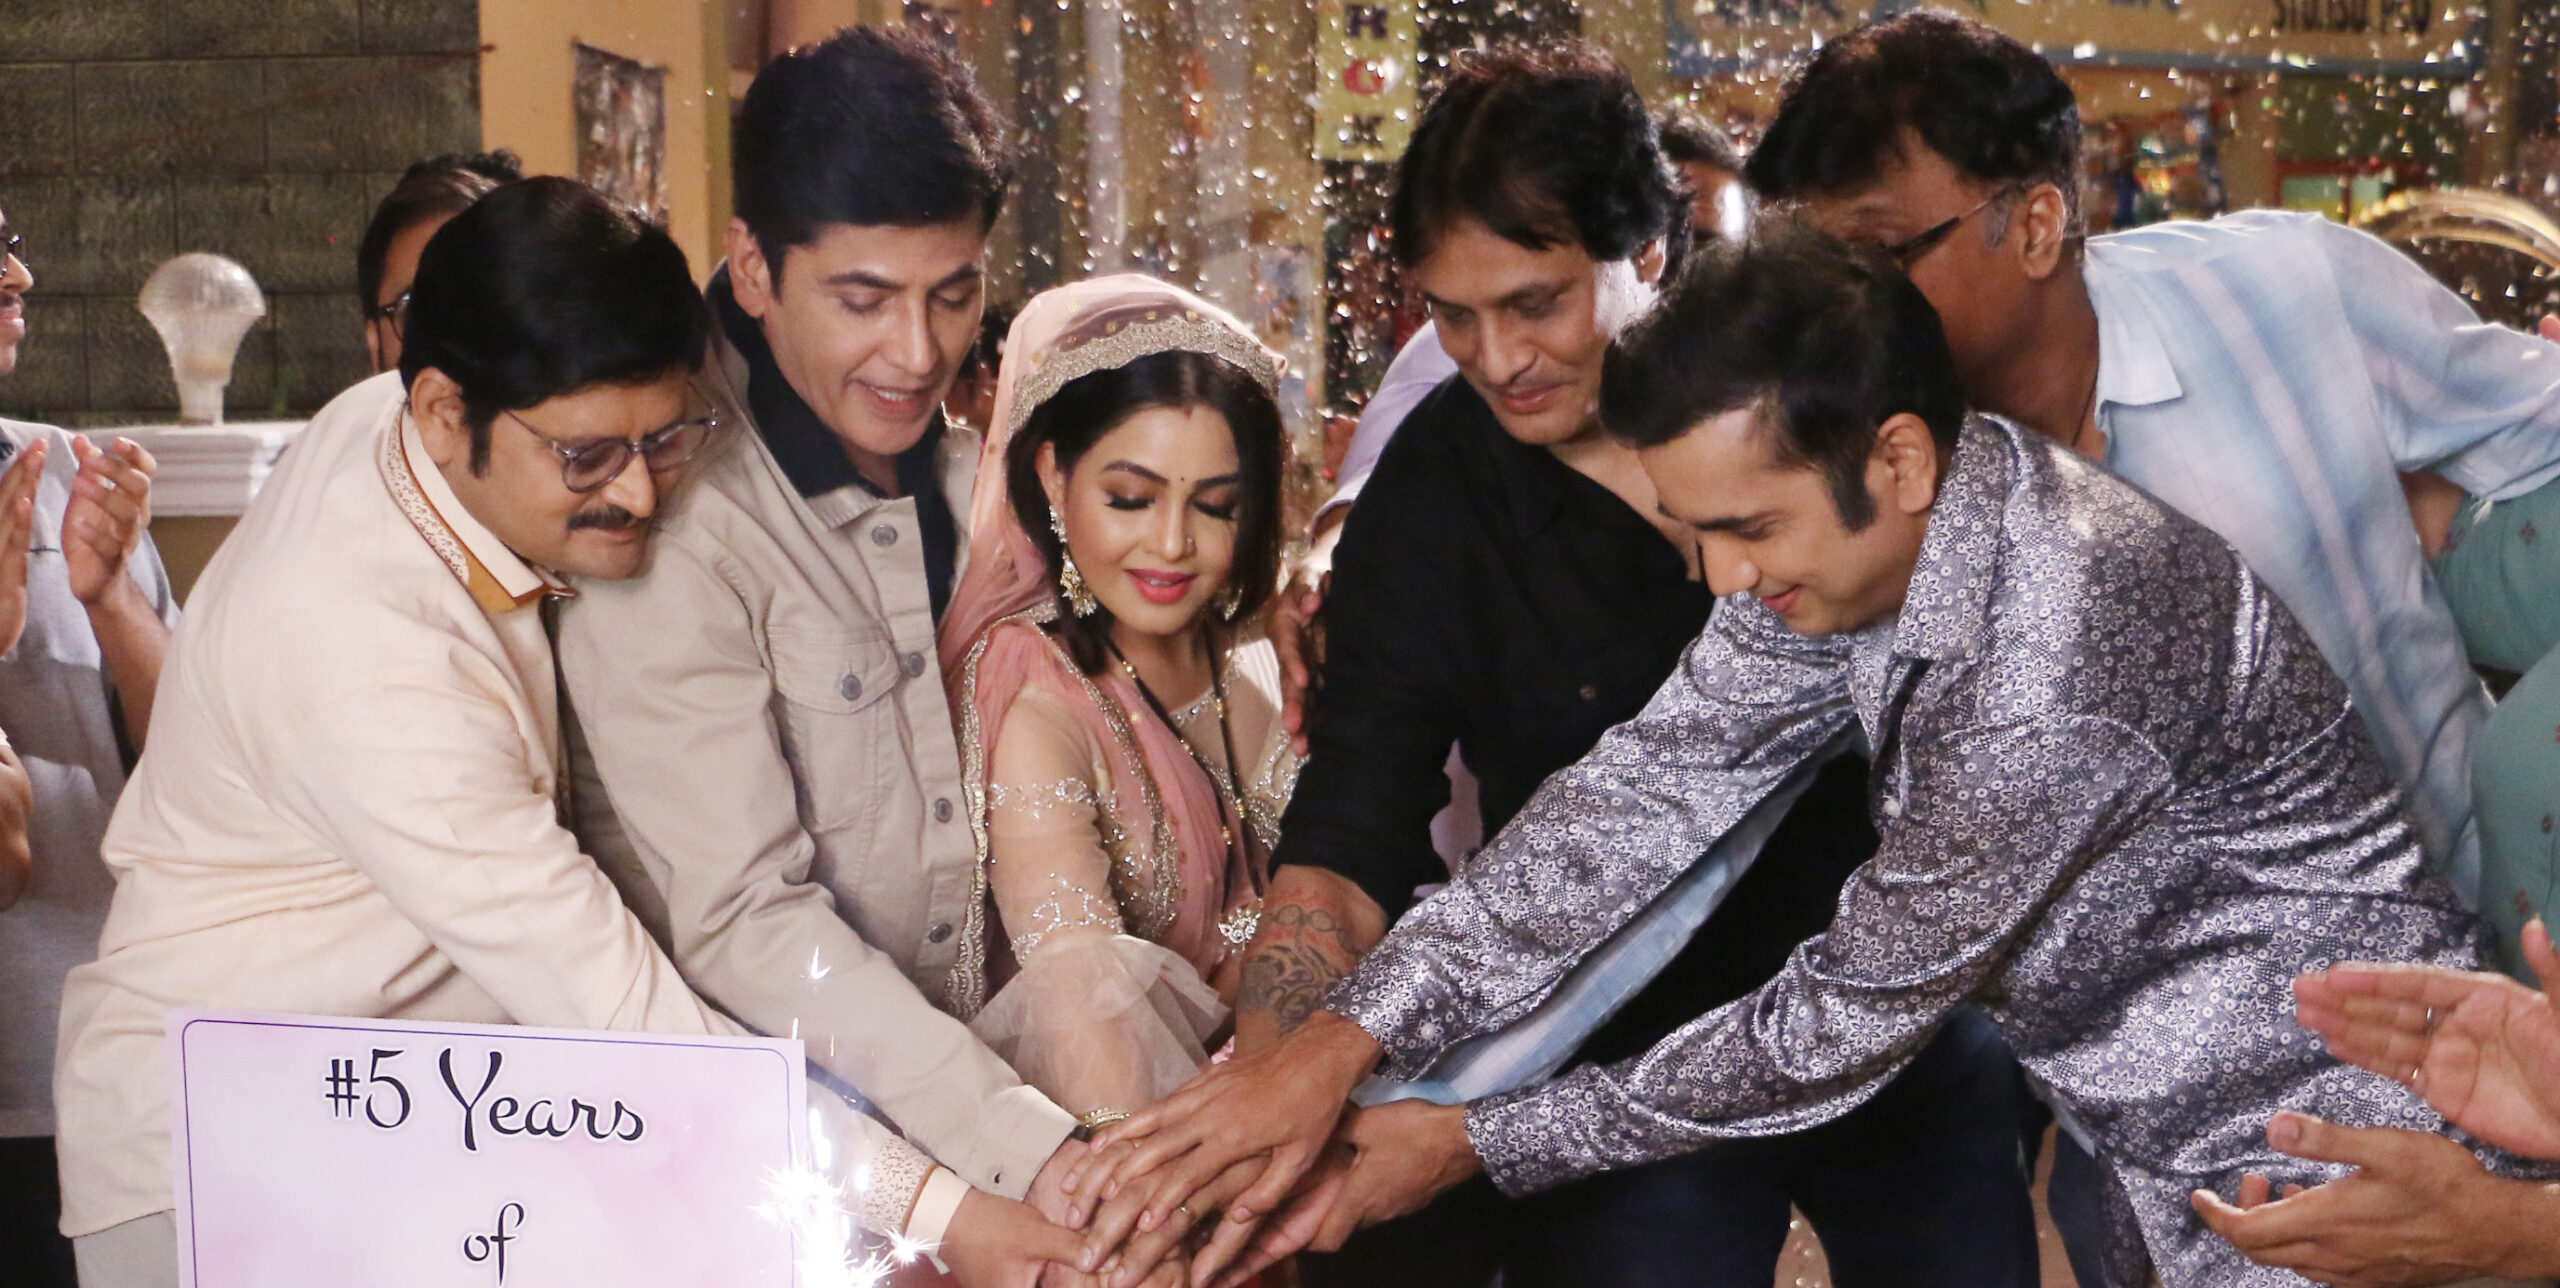 Bhabiji Ghar Par Hain completes 5 years of entertaining its viewers